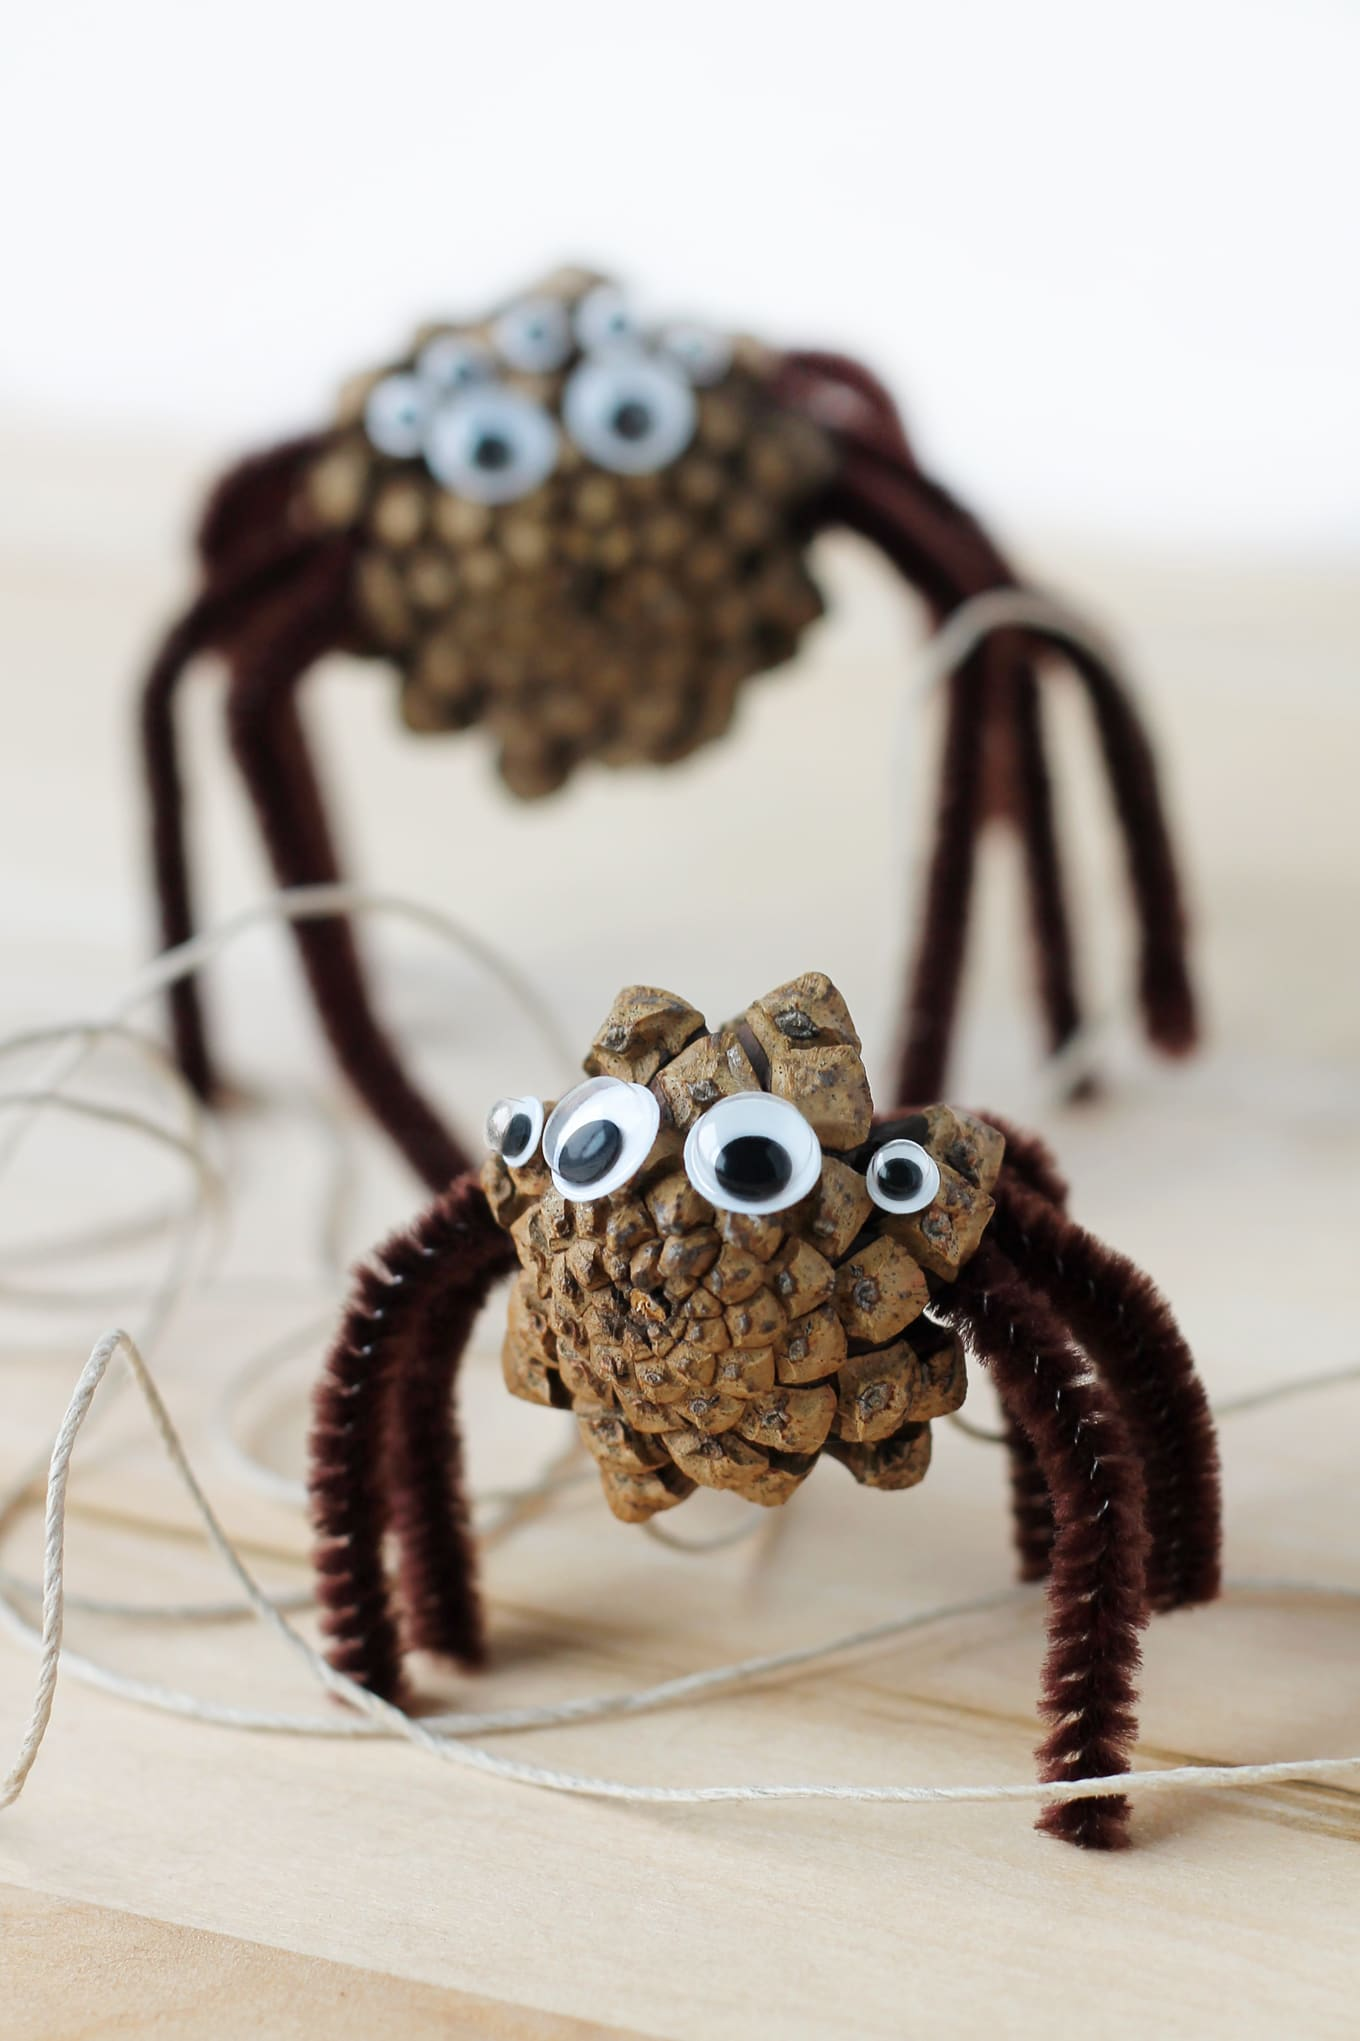 Two Pine Cone Spiders